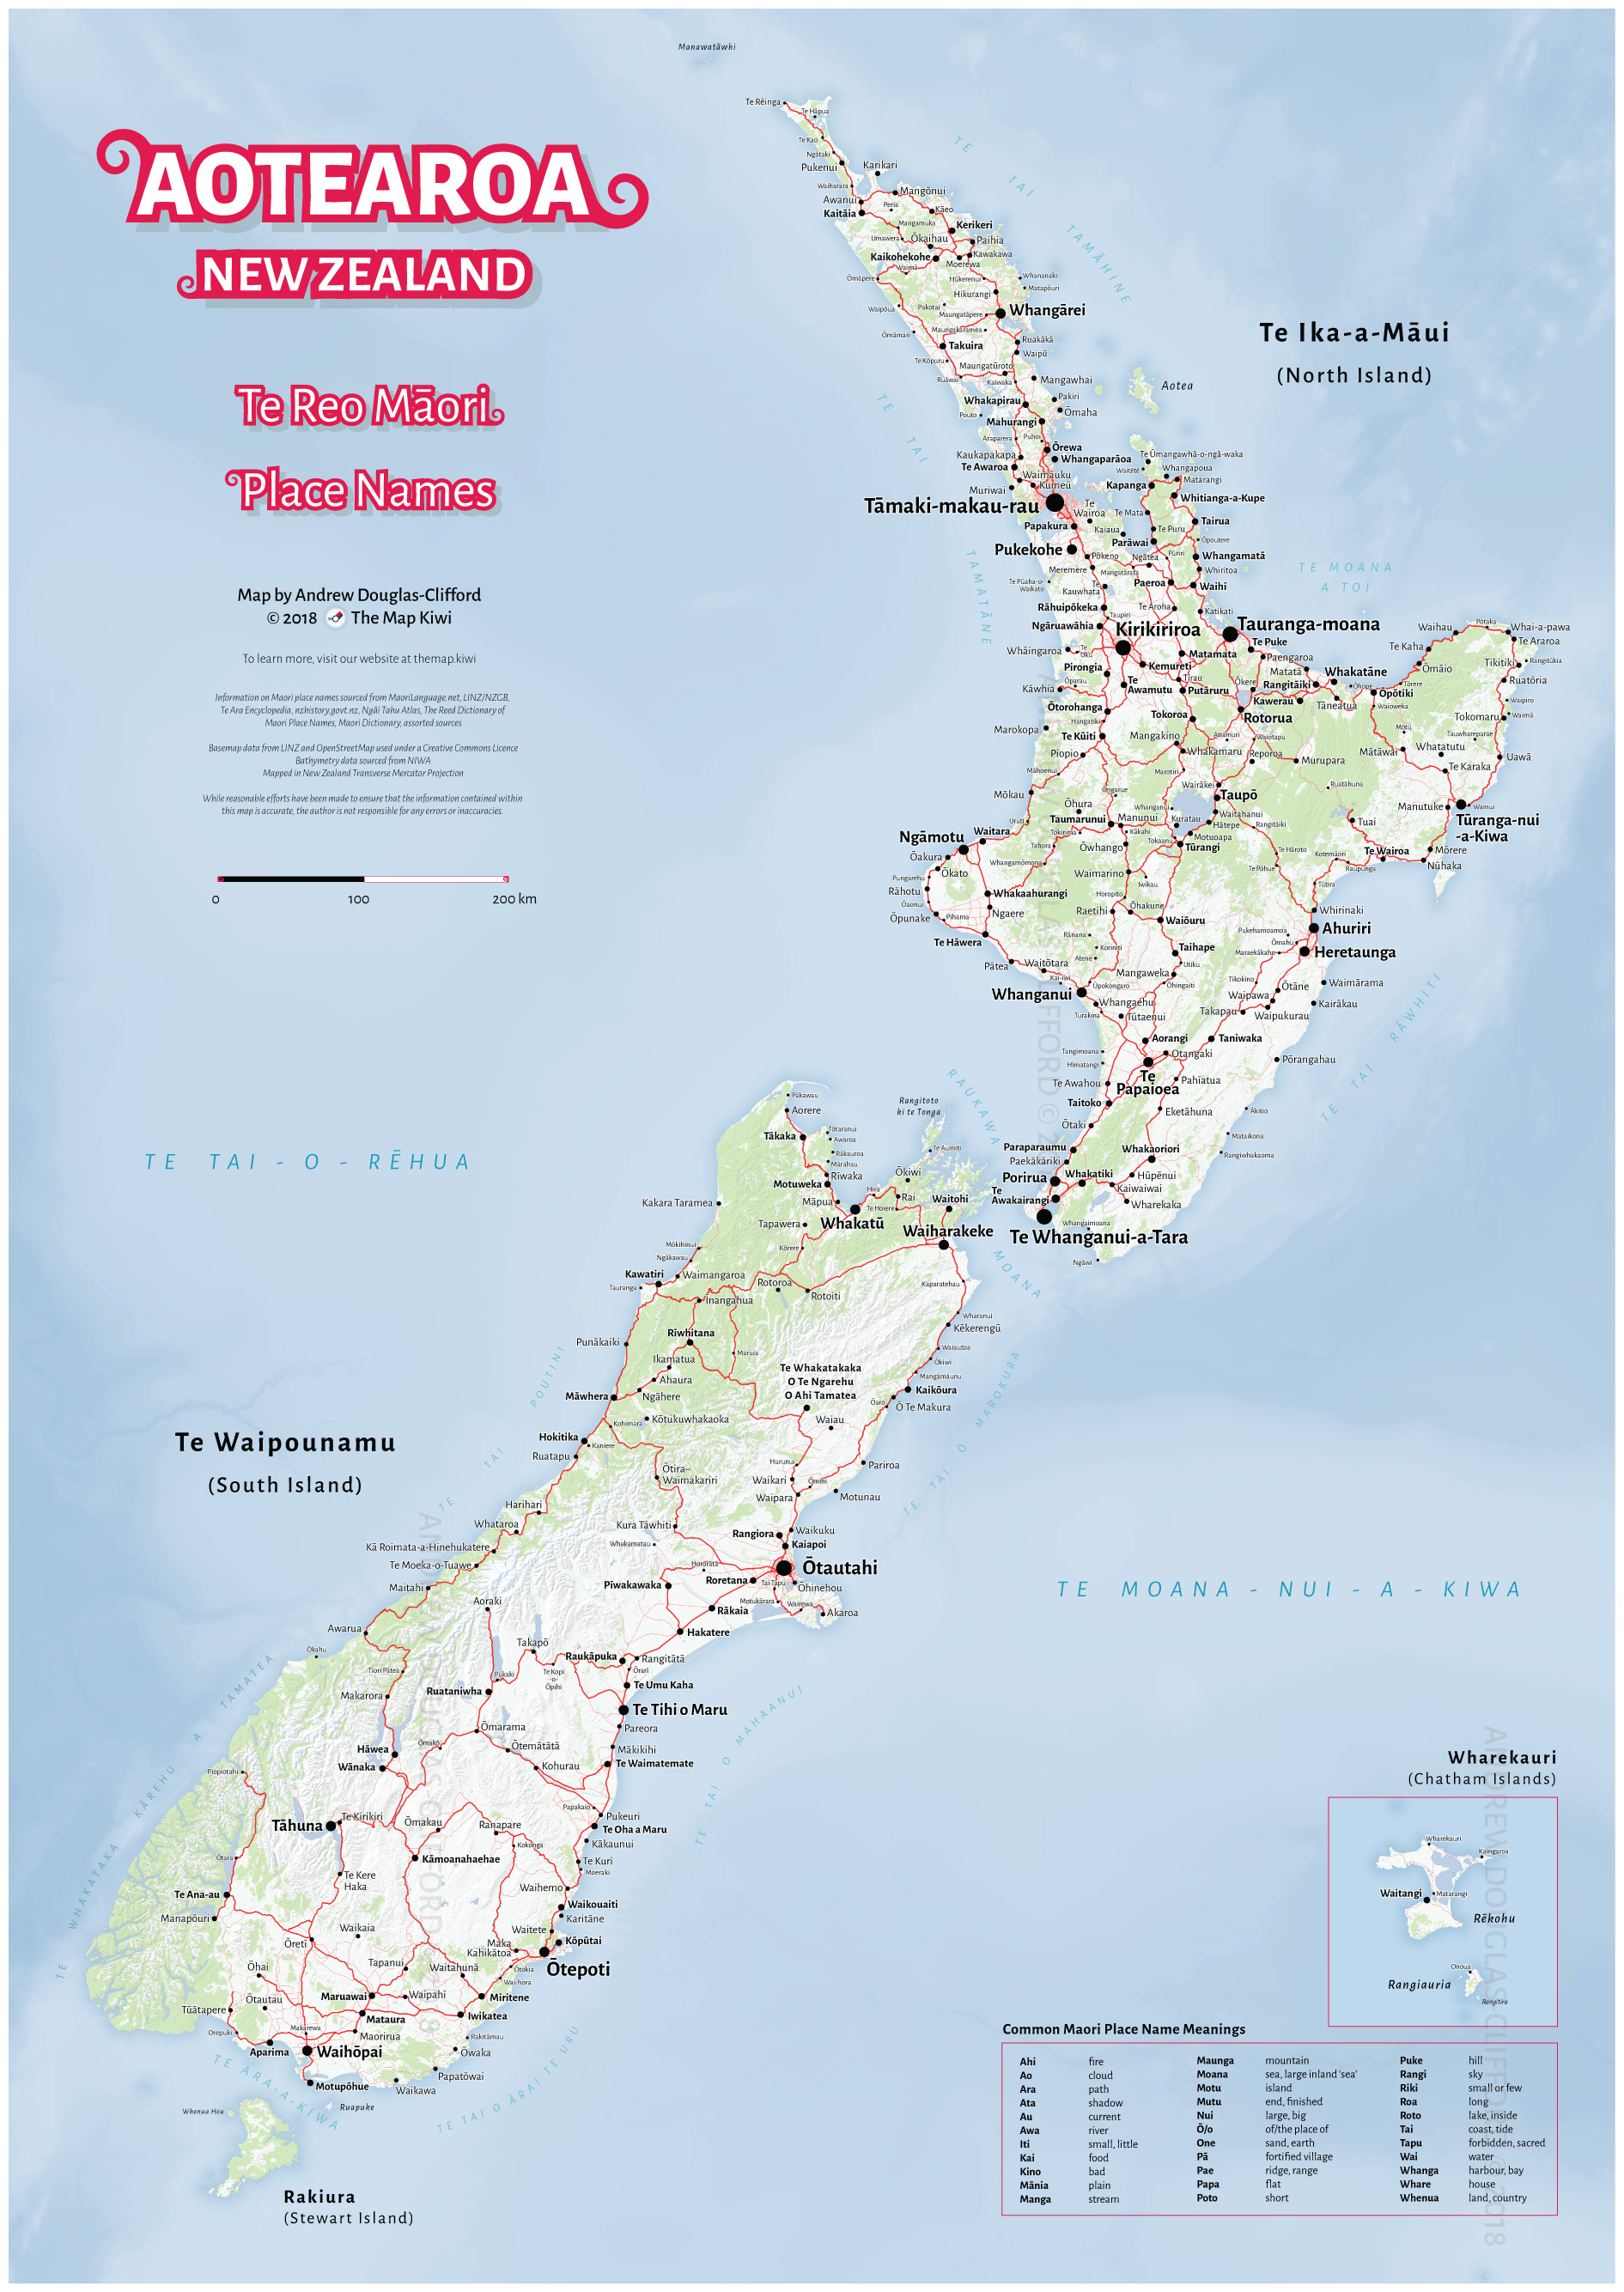 South Island Map Of New Zealand.Mapworld Home Page